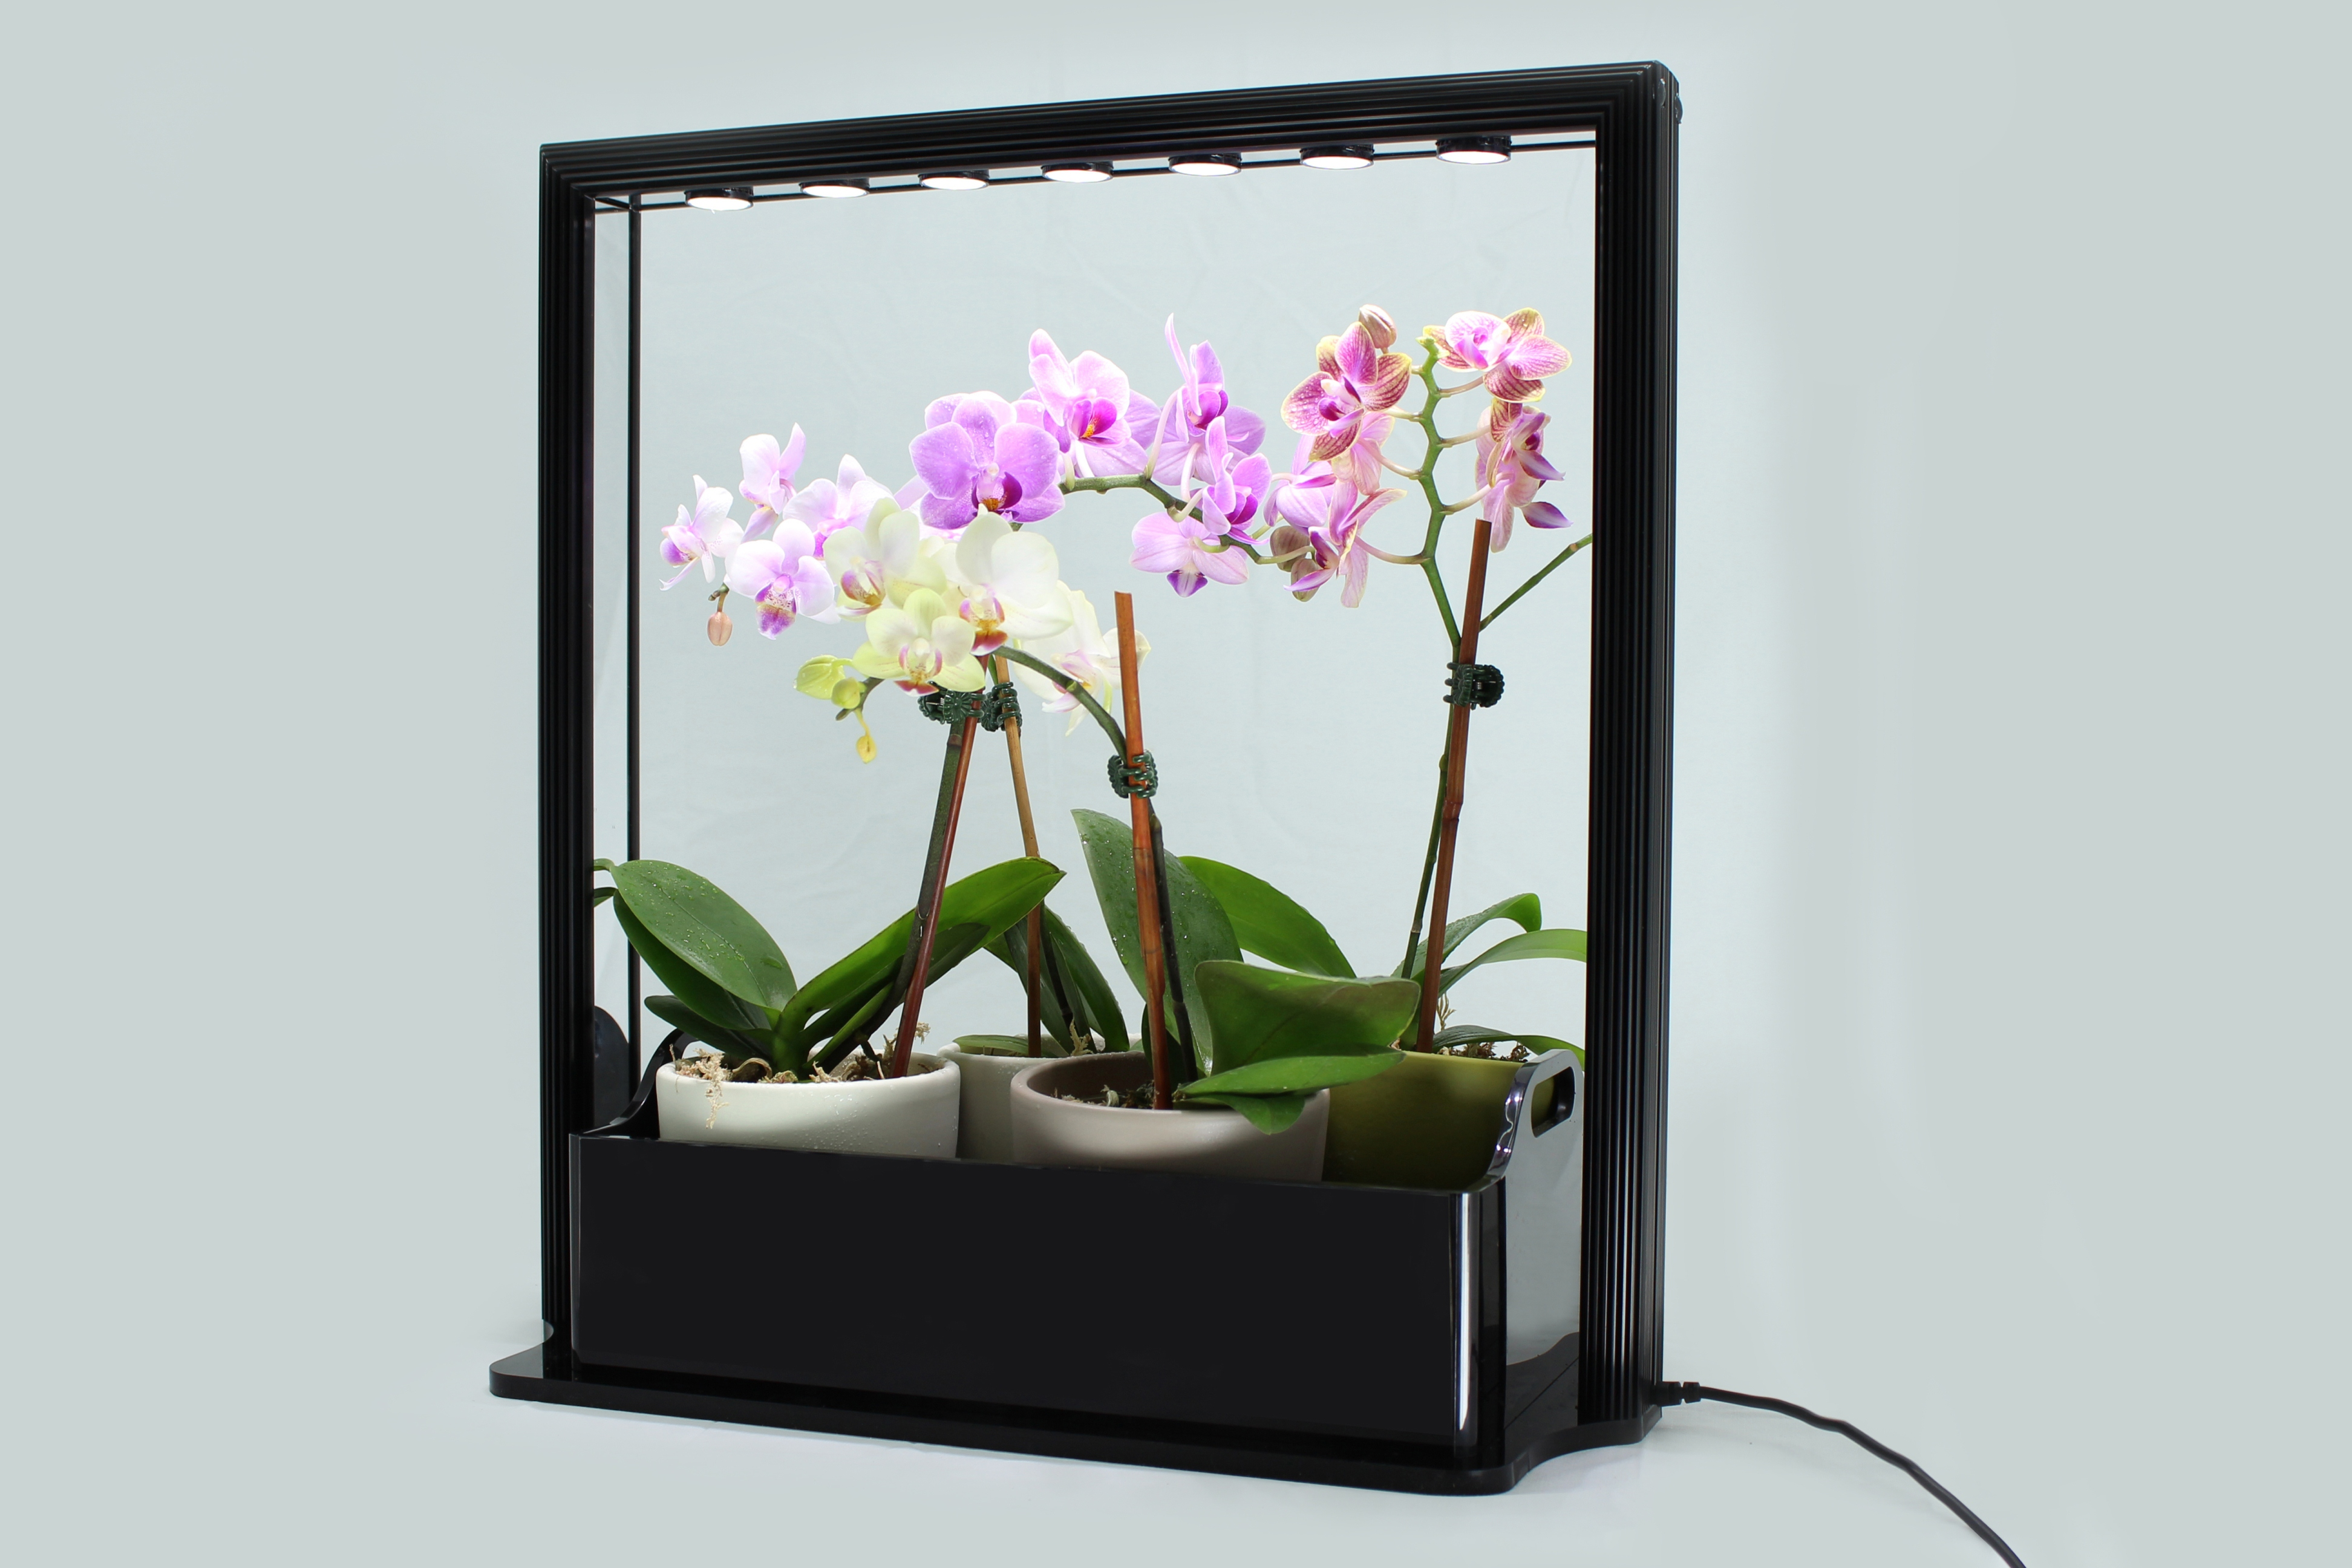 Plant Grow Lights India Buying Tips And Reviews Complete